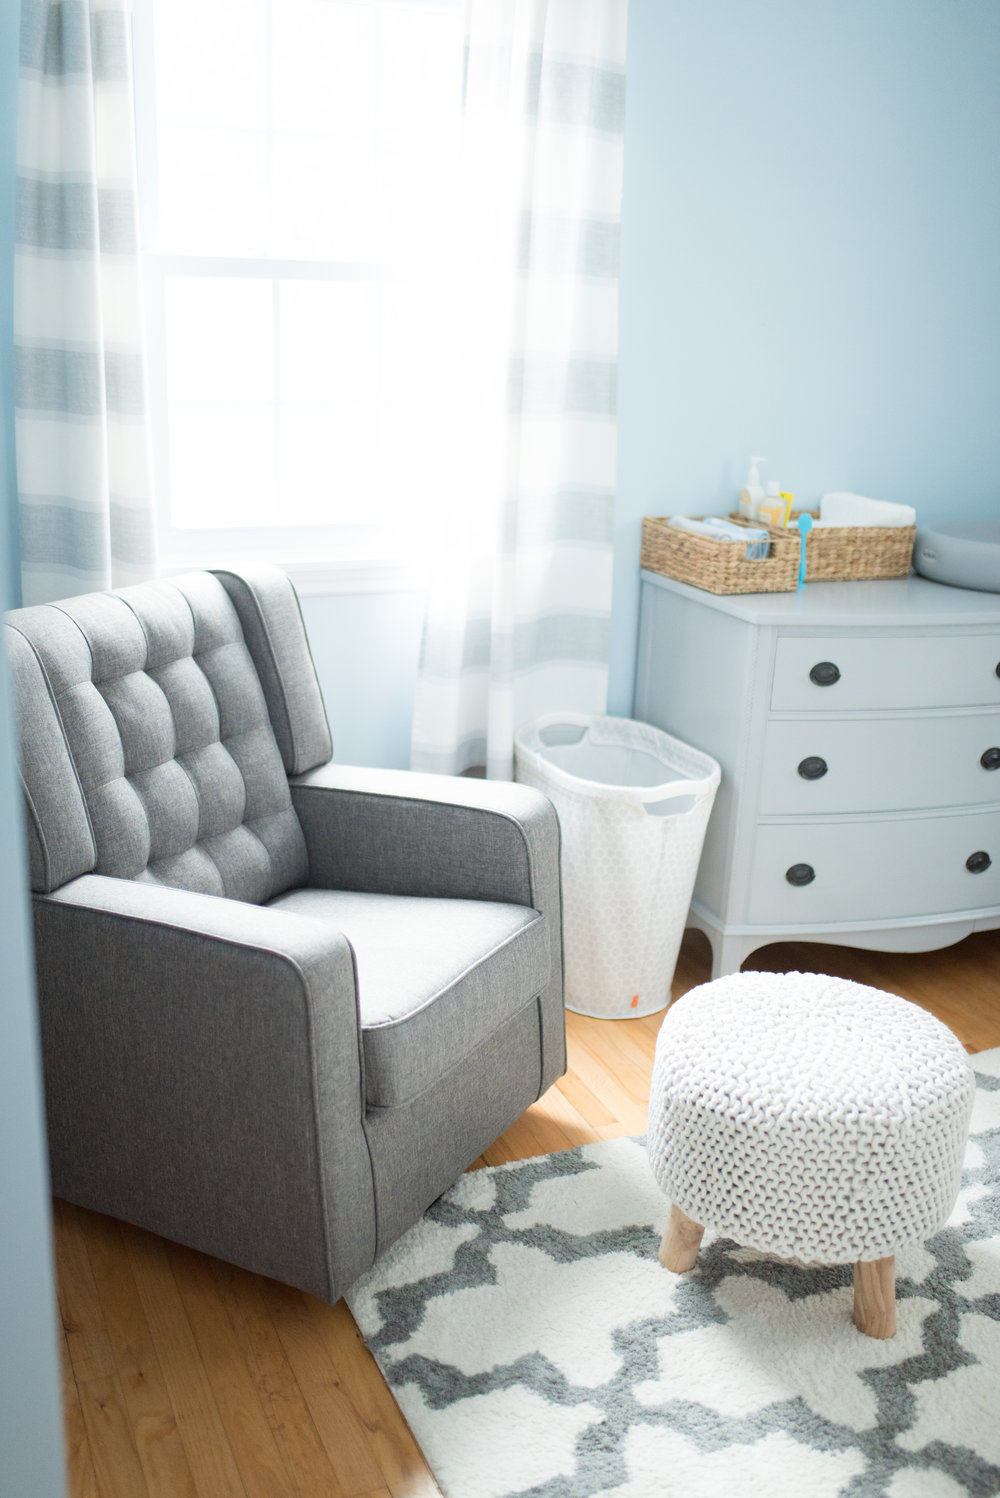 Baby boy nursery decor and inspiration  |  Nicole Starr Photography  |  Saratoga Springs and Boston Baby Photographer